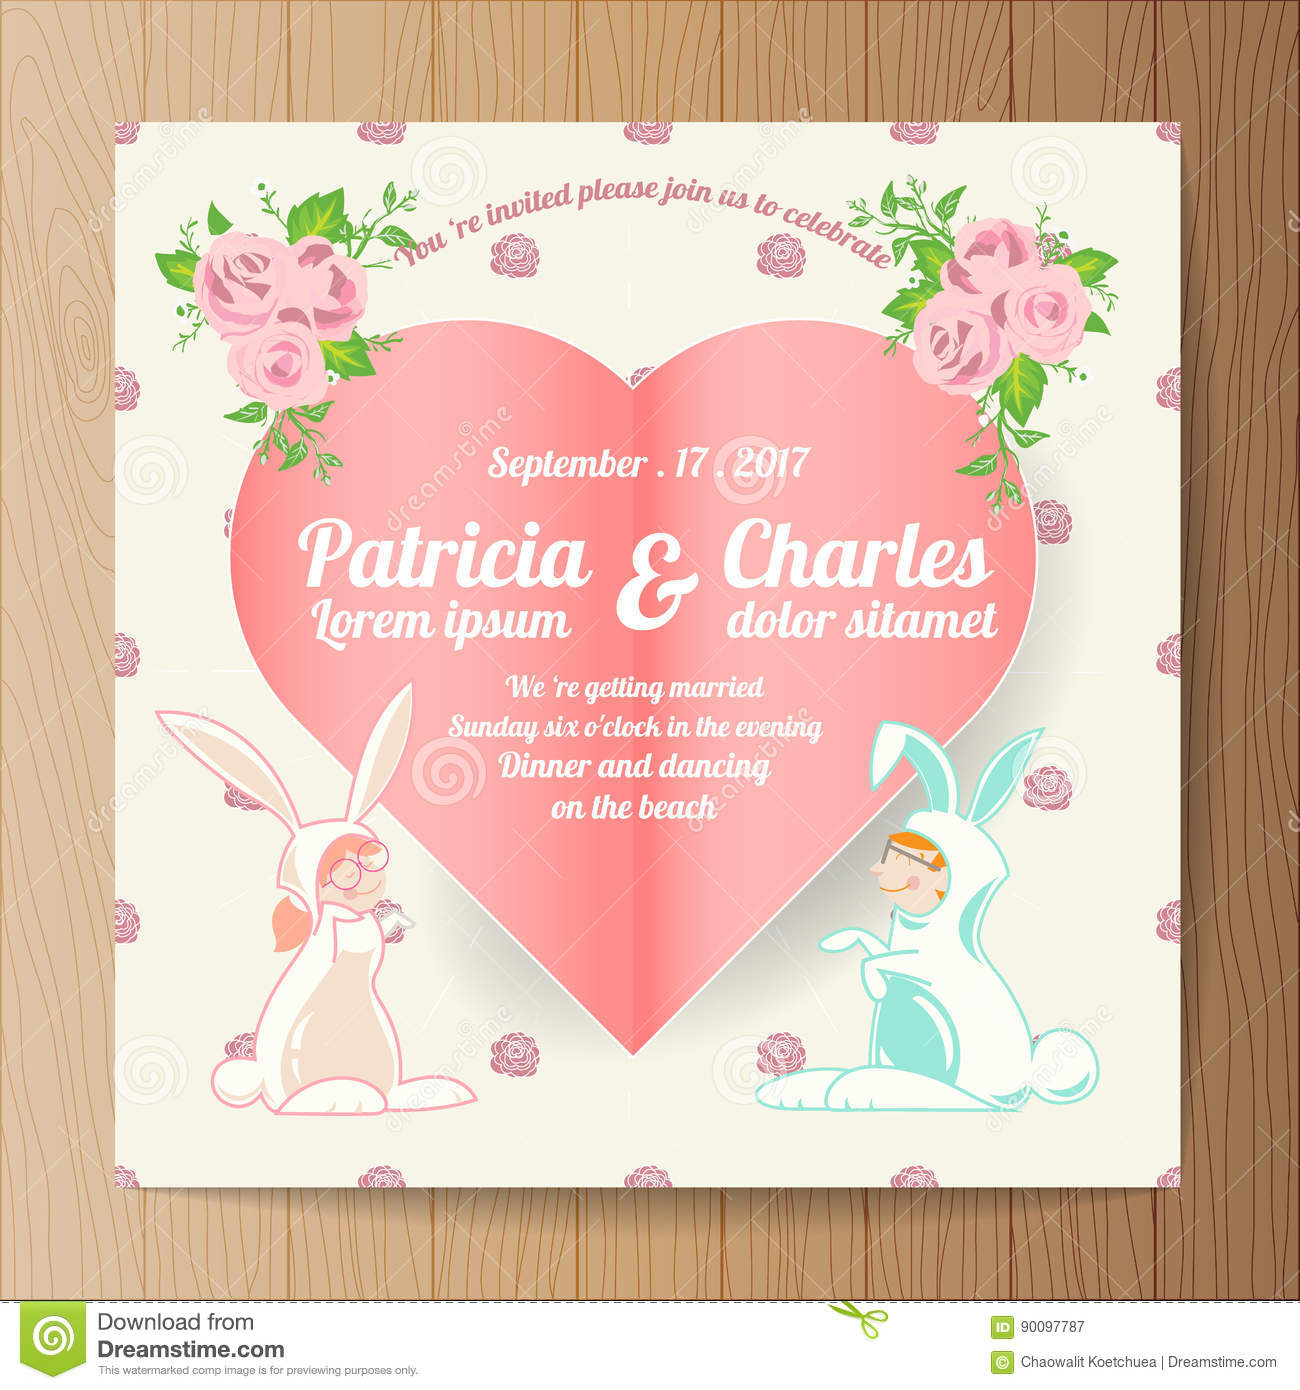 Great Invitation Cards Templates For Marriage Pictures >> Idea ...